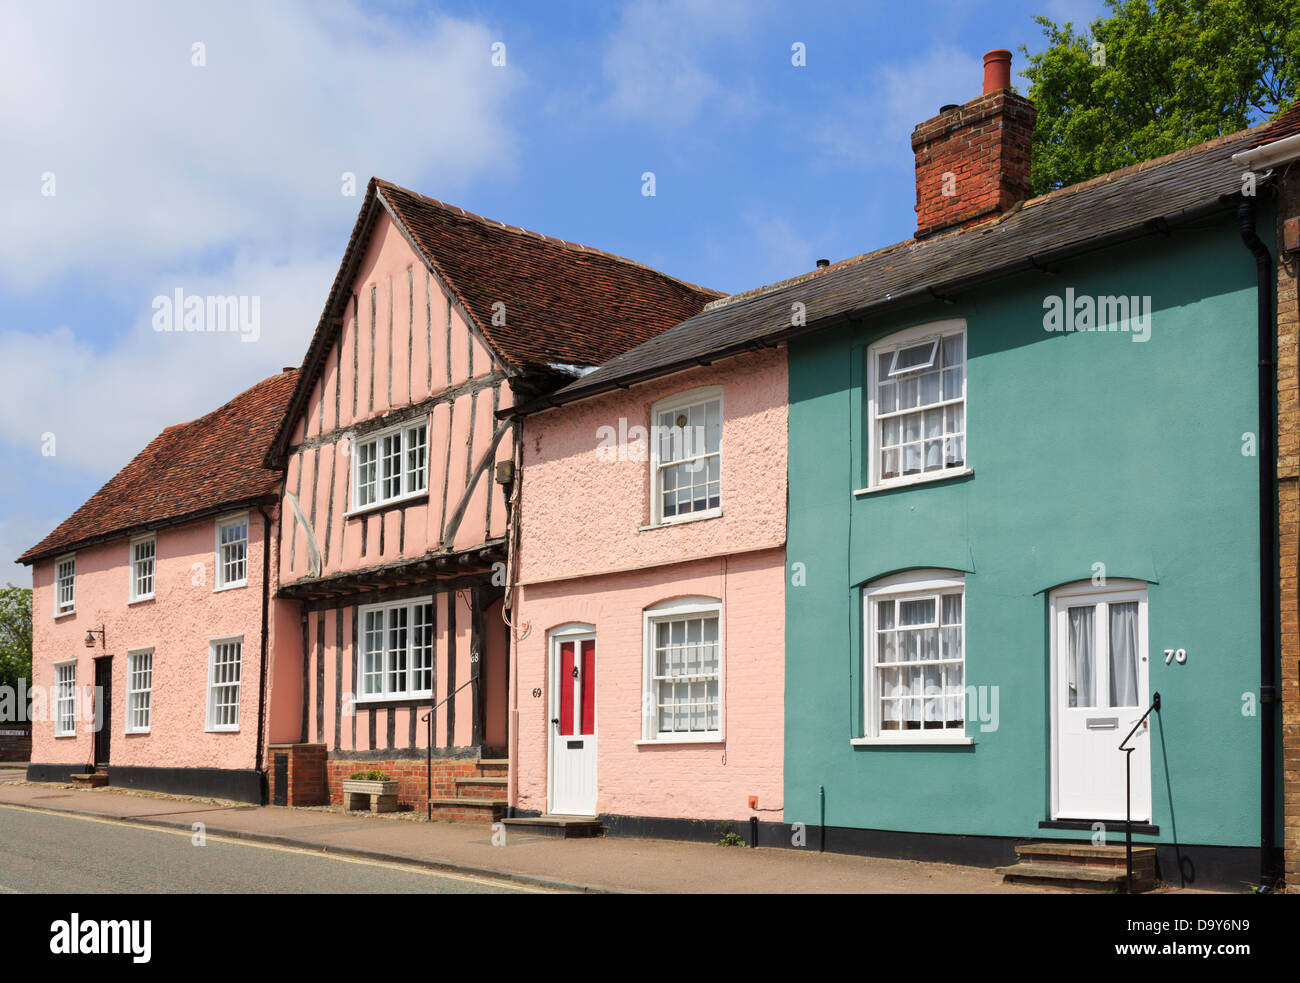 Row of colourful old cottages on Church Street in historic picturesque village of Lavenham, Suffolk, England, UK, - Stock Image